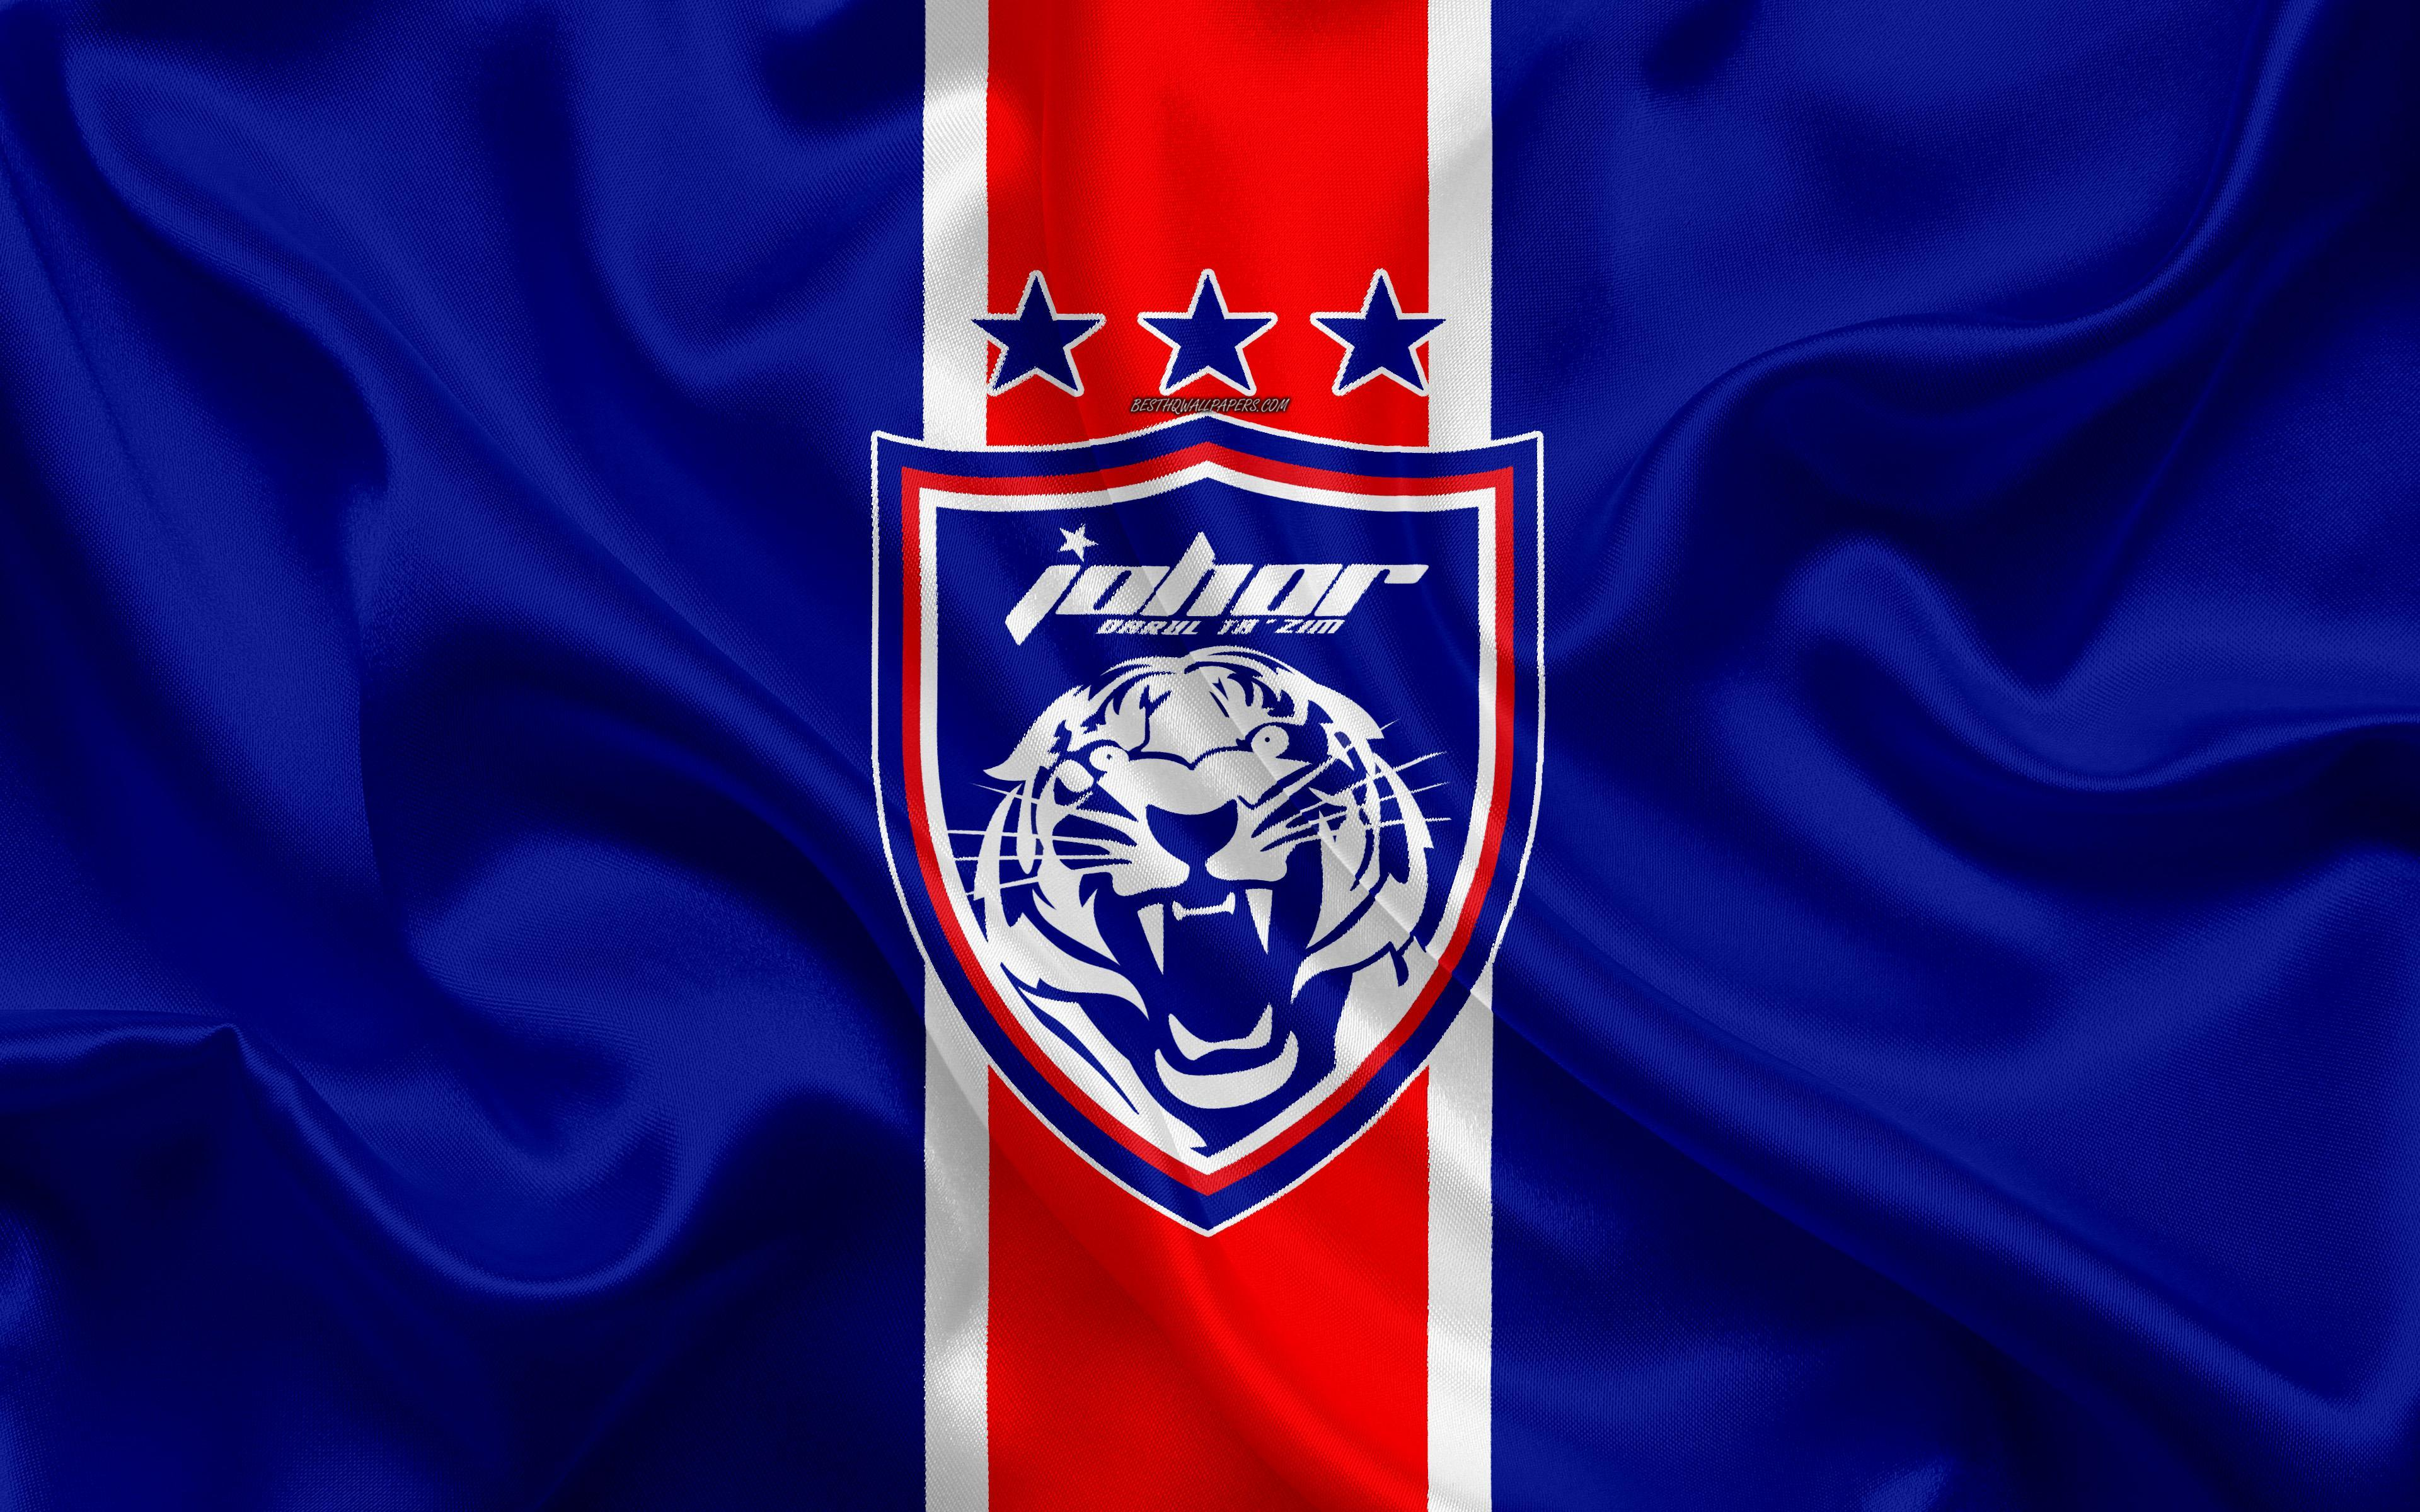 Download wallpapers Johor Darul Tazim FC, 4k, logo, silk texture